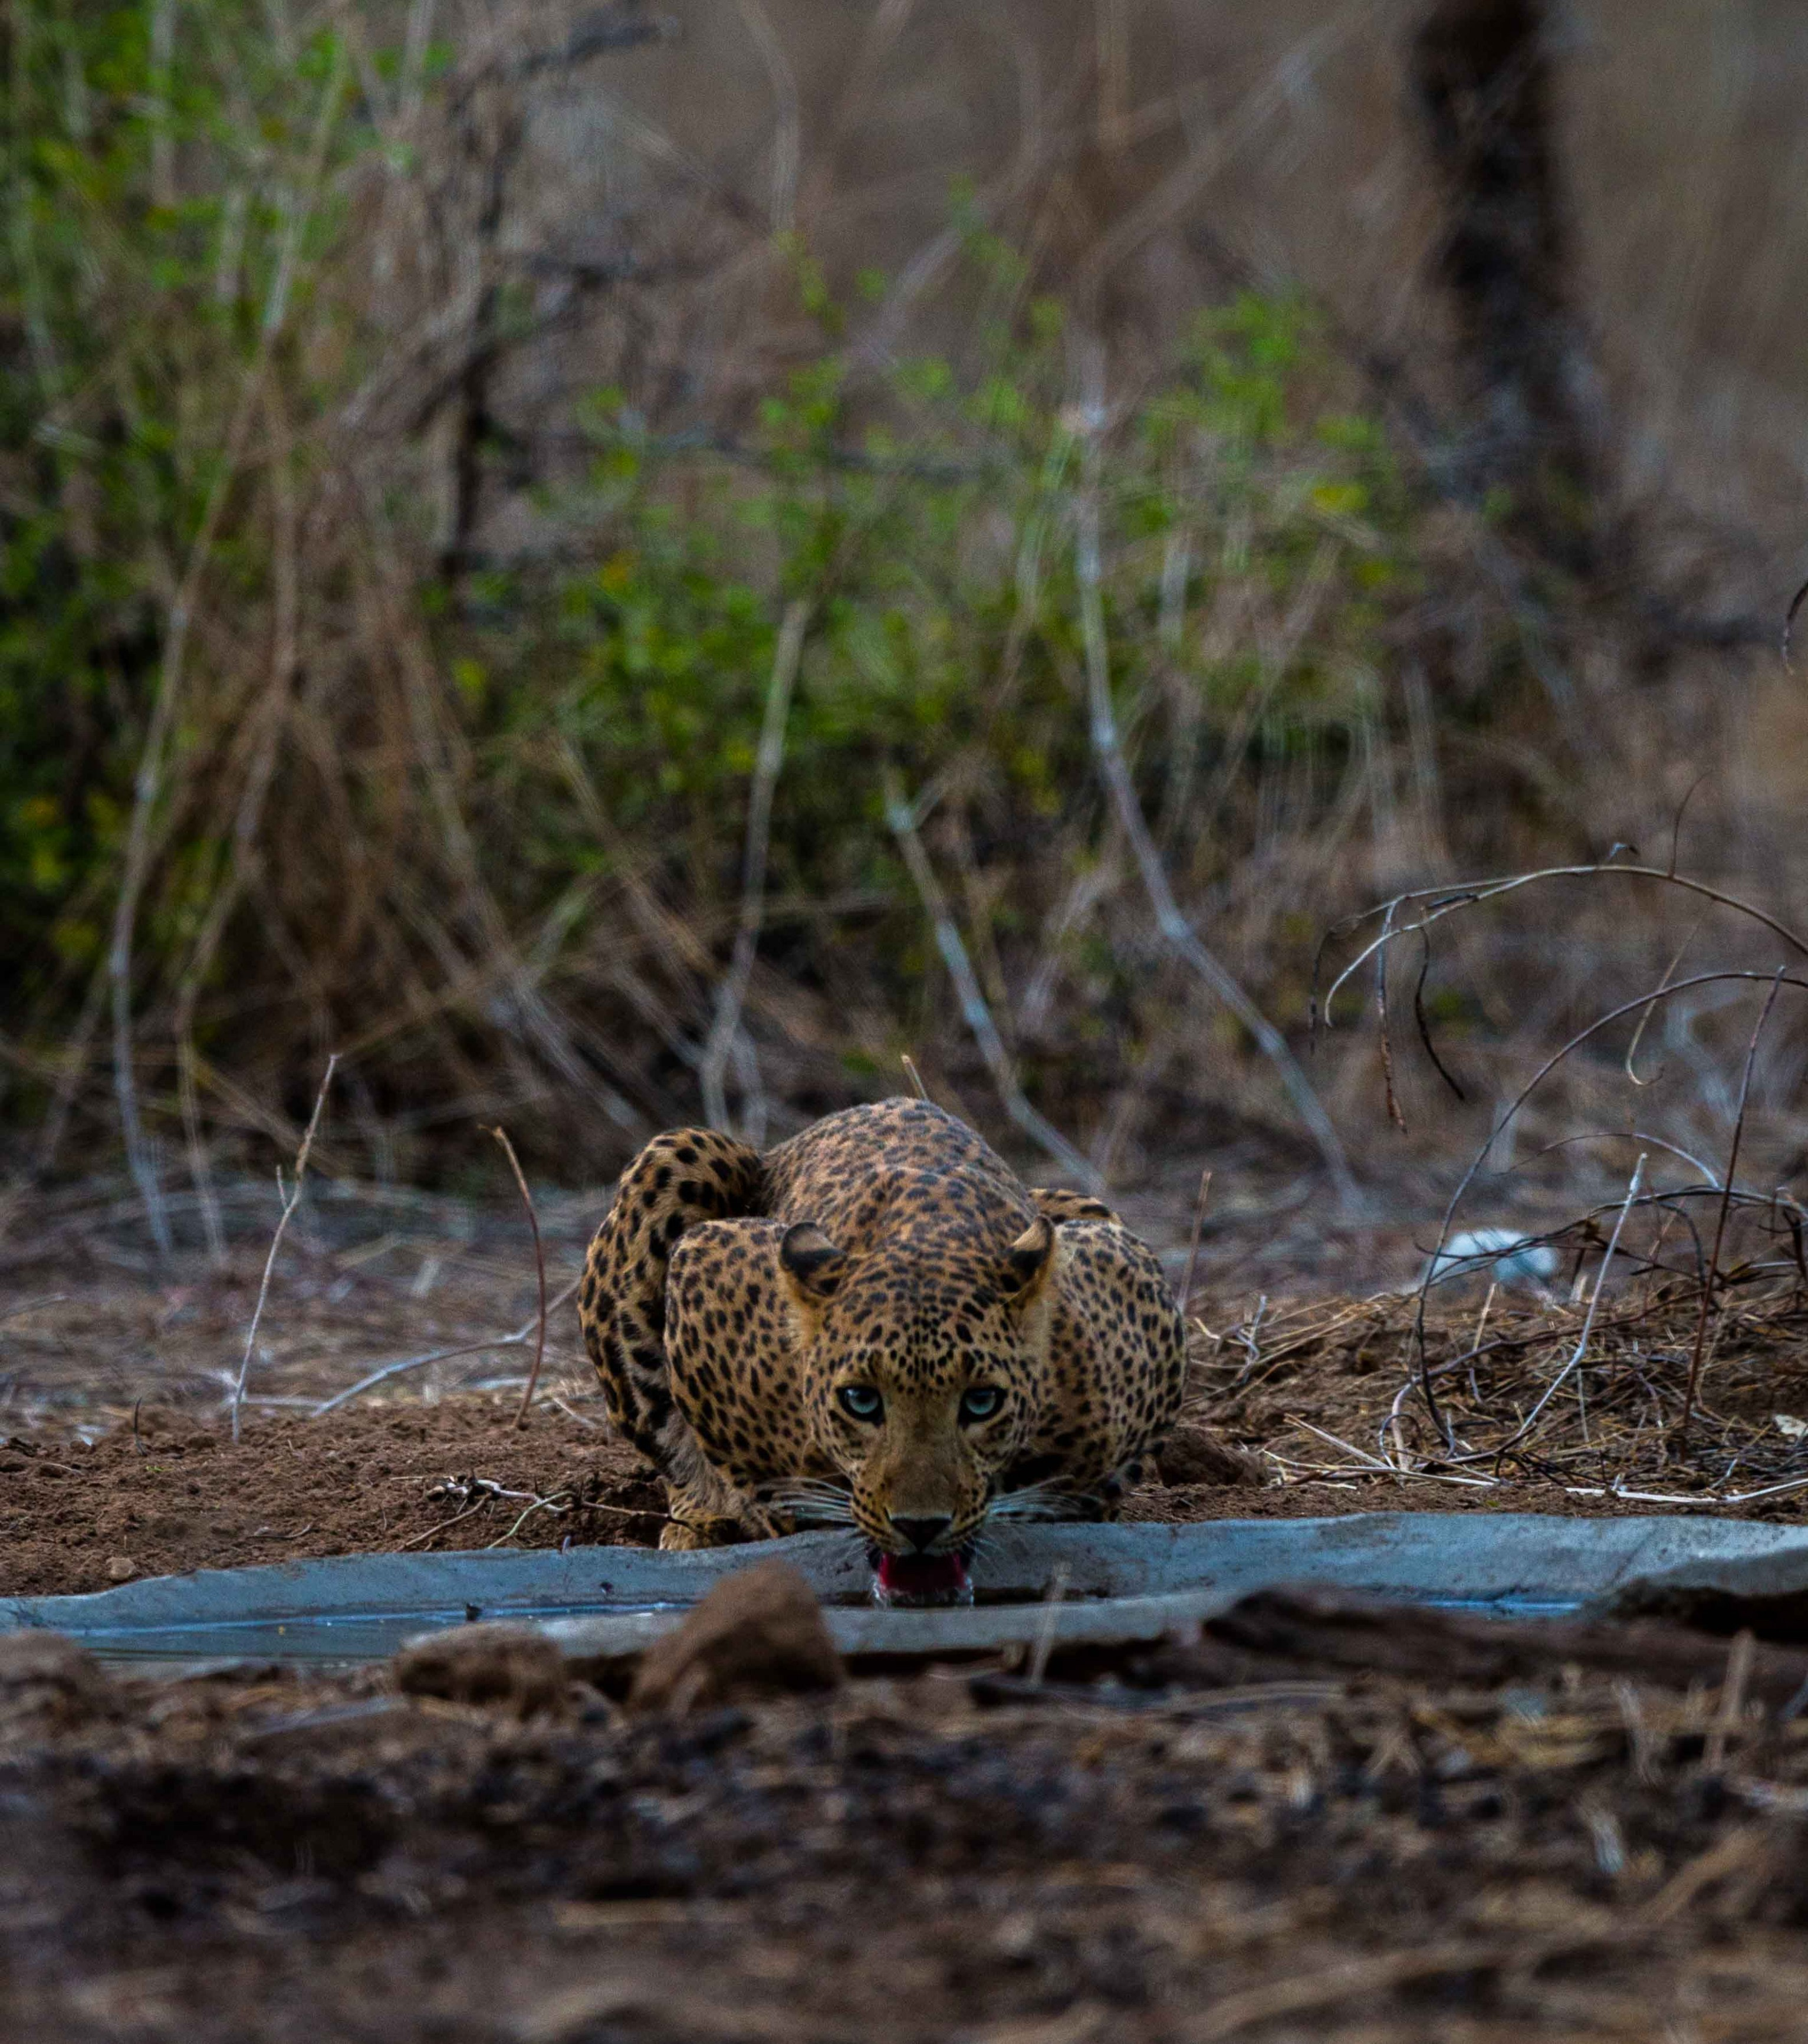 A leopard is a solitary animal, who rests in the day, and spends its nights hunting for prey. Photo: Surendra Chouhan